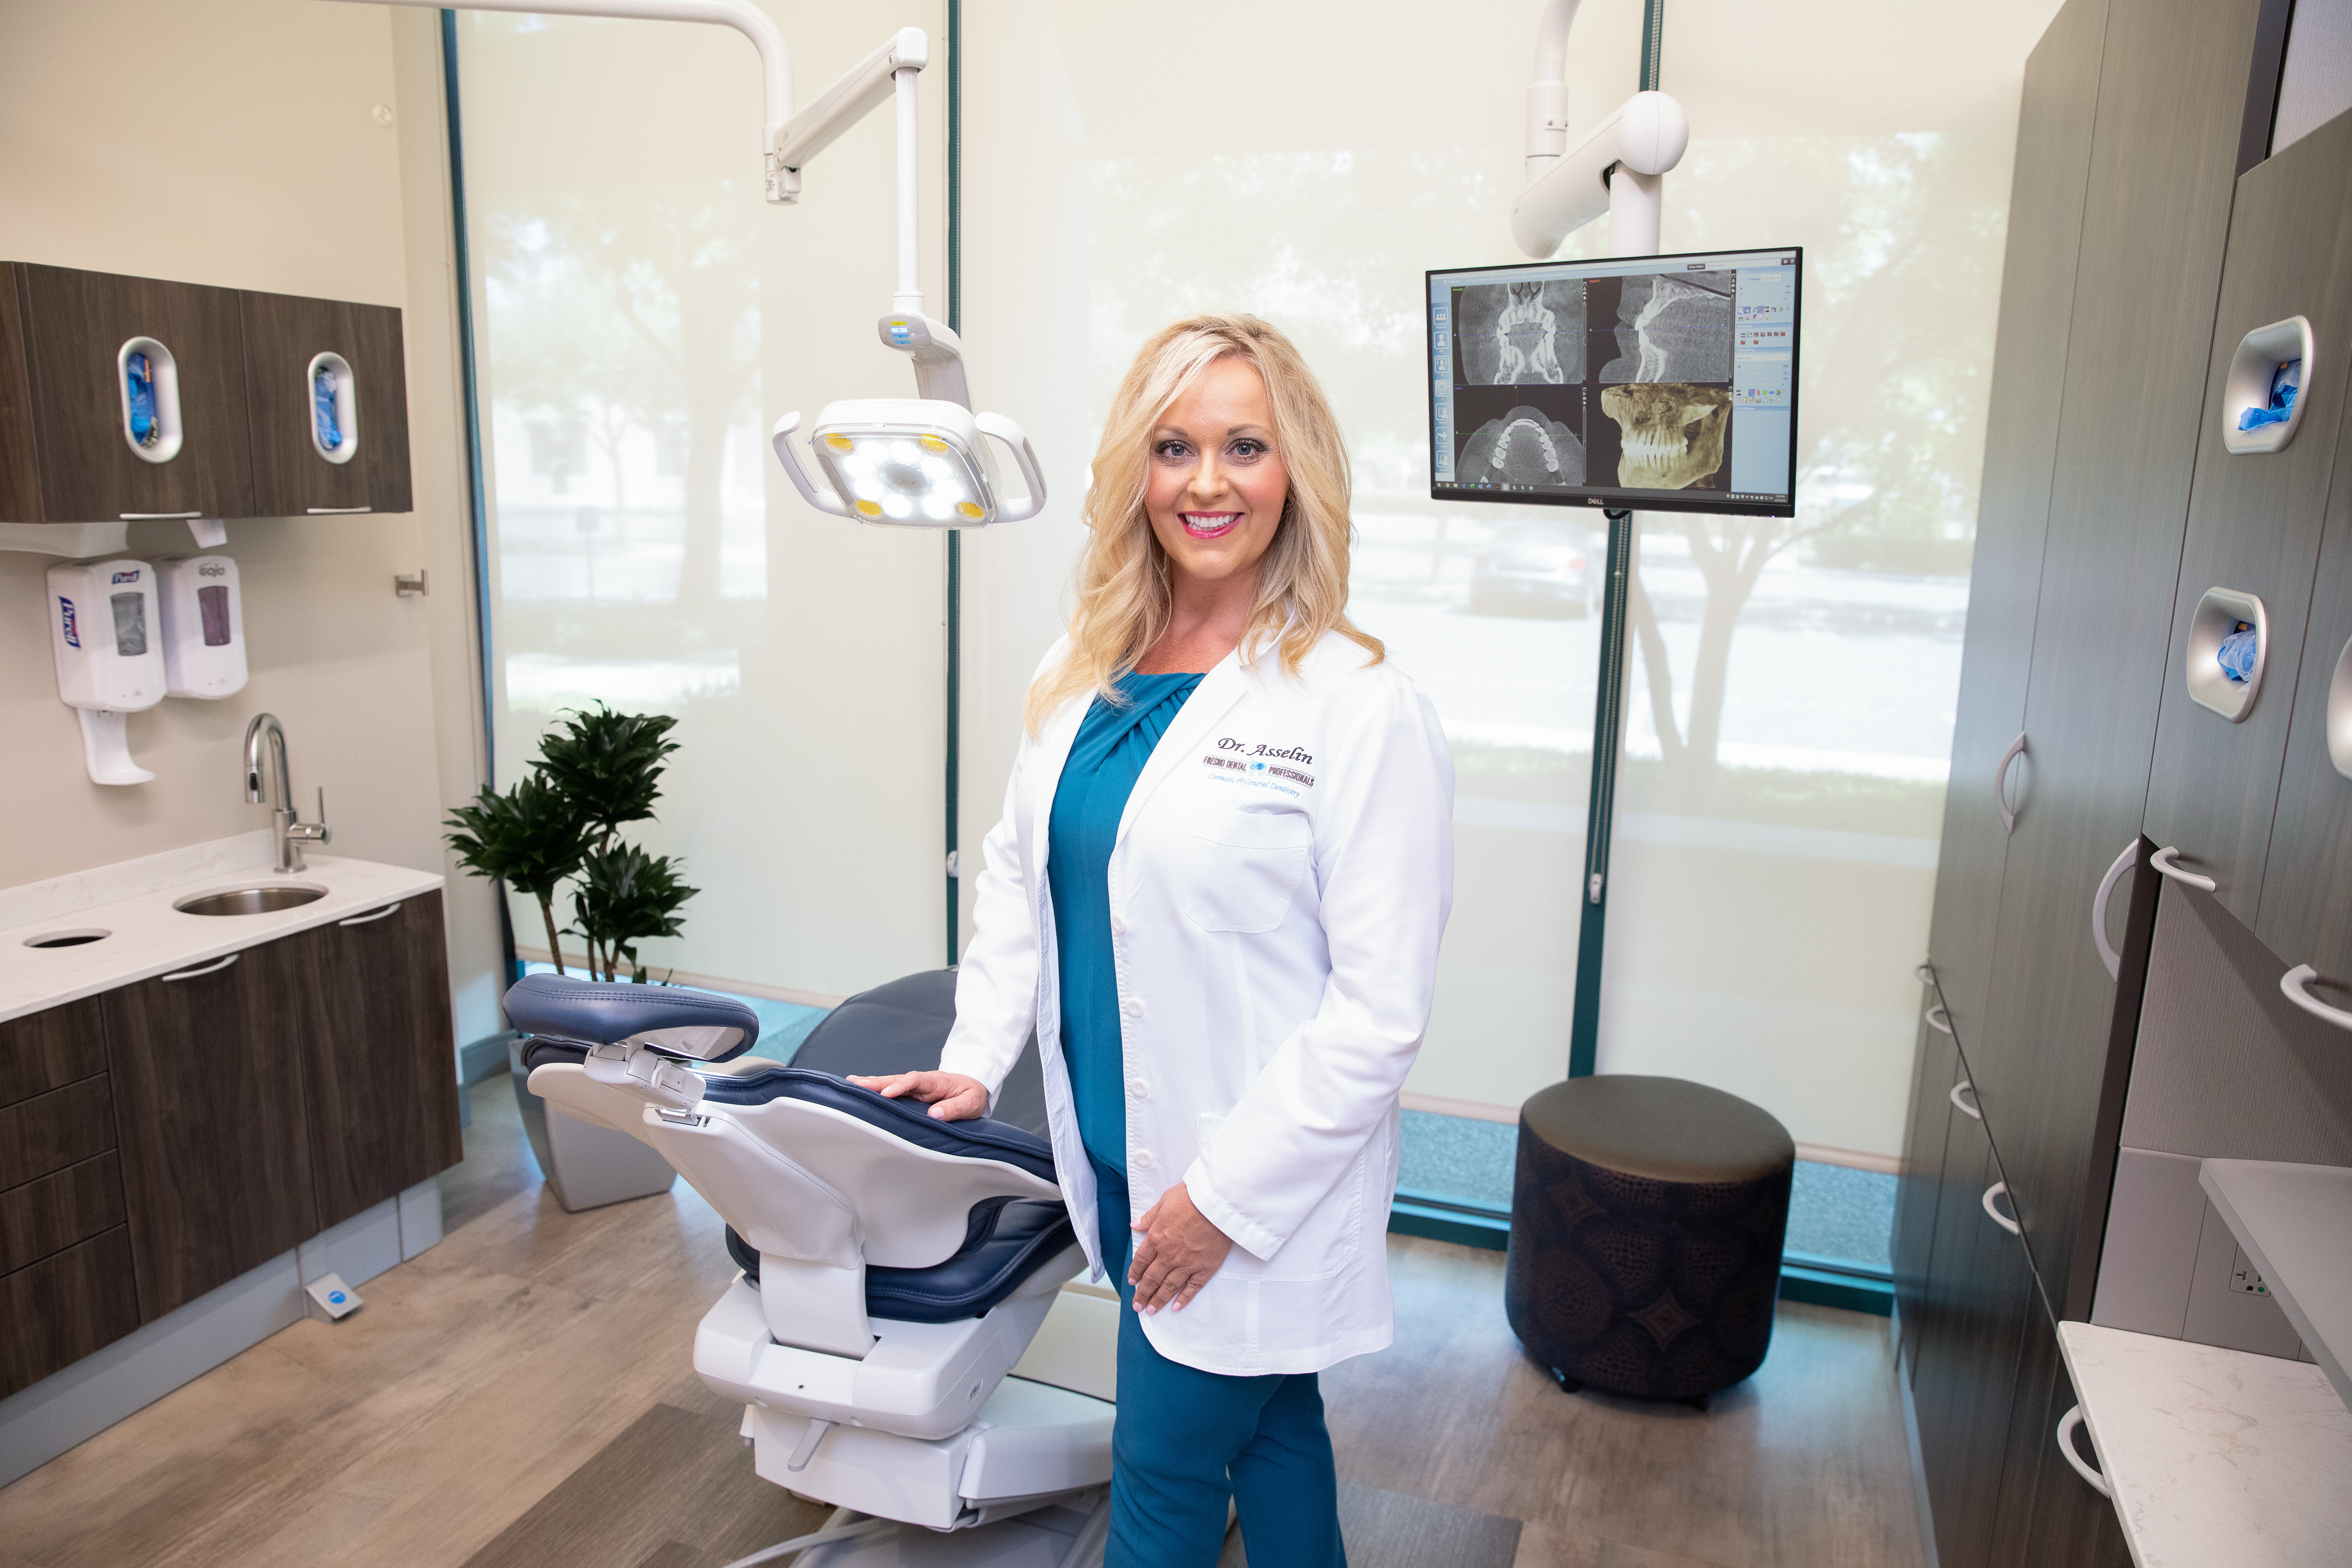 General Dentistry Practice in Fresno Expands Production and Technology in New Office Build